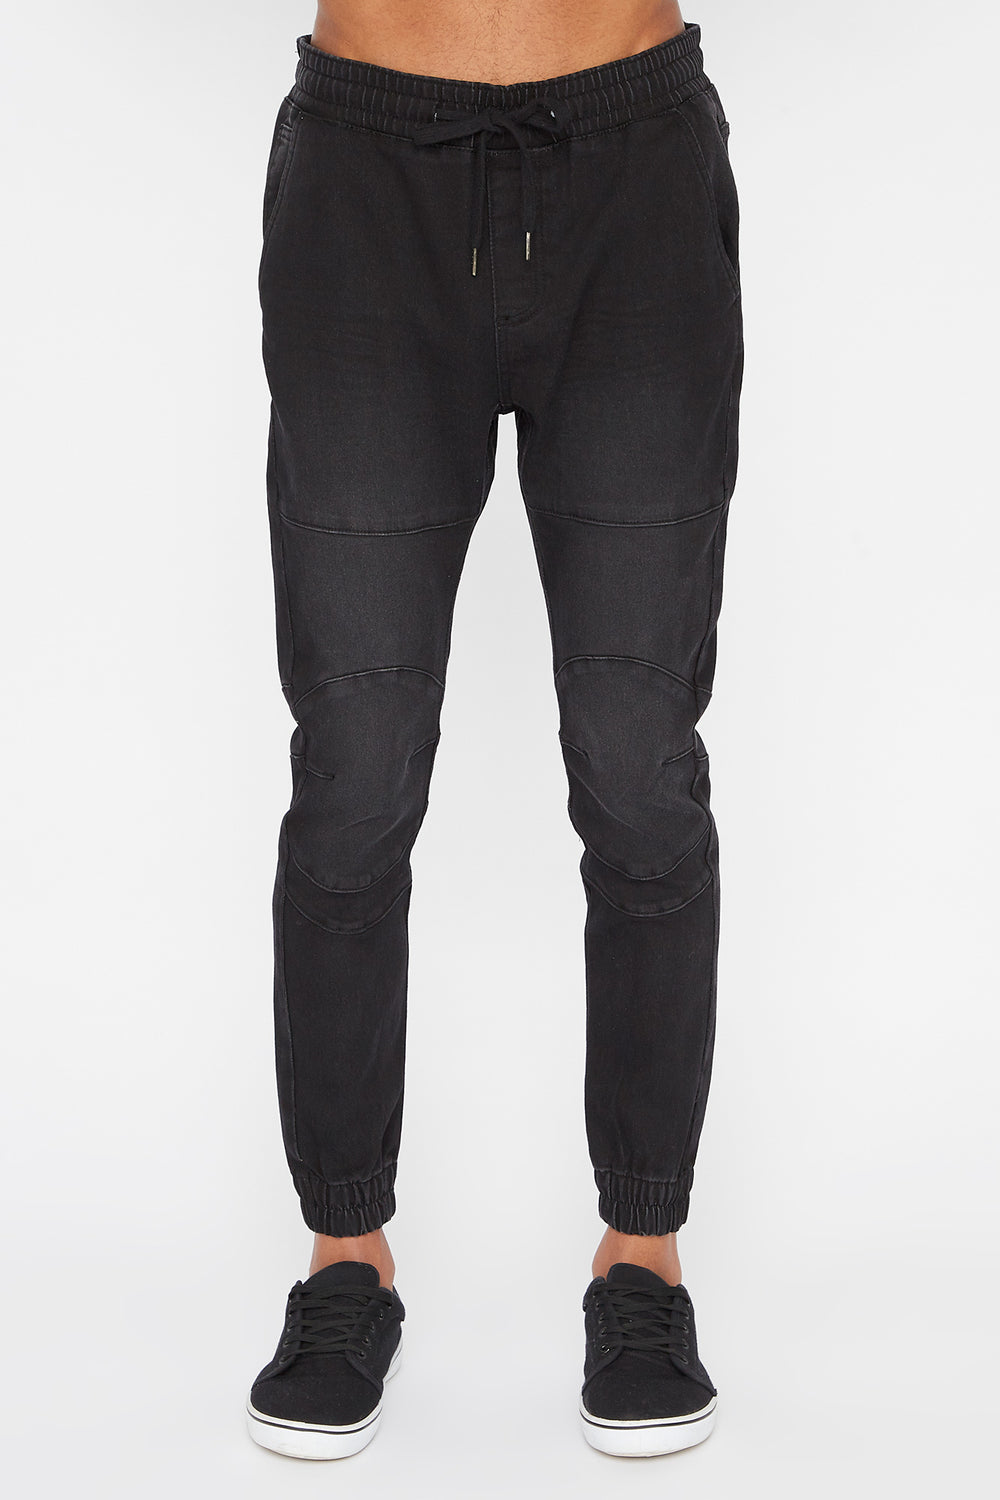 Zoo York Mens 5-Pocket Light Wash Jogger Jean Black